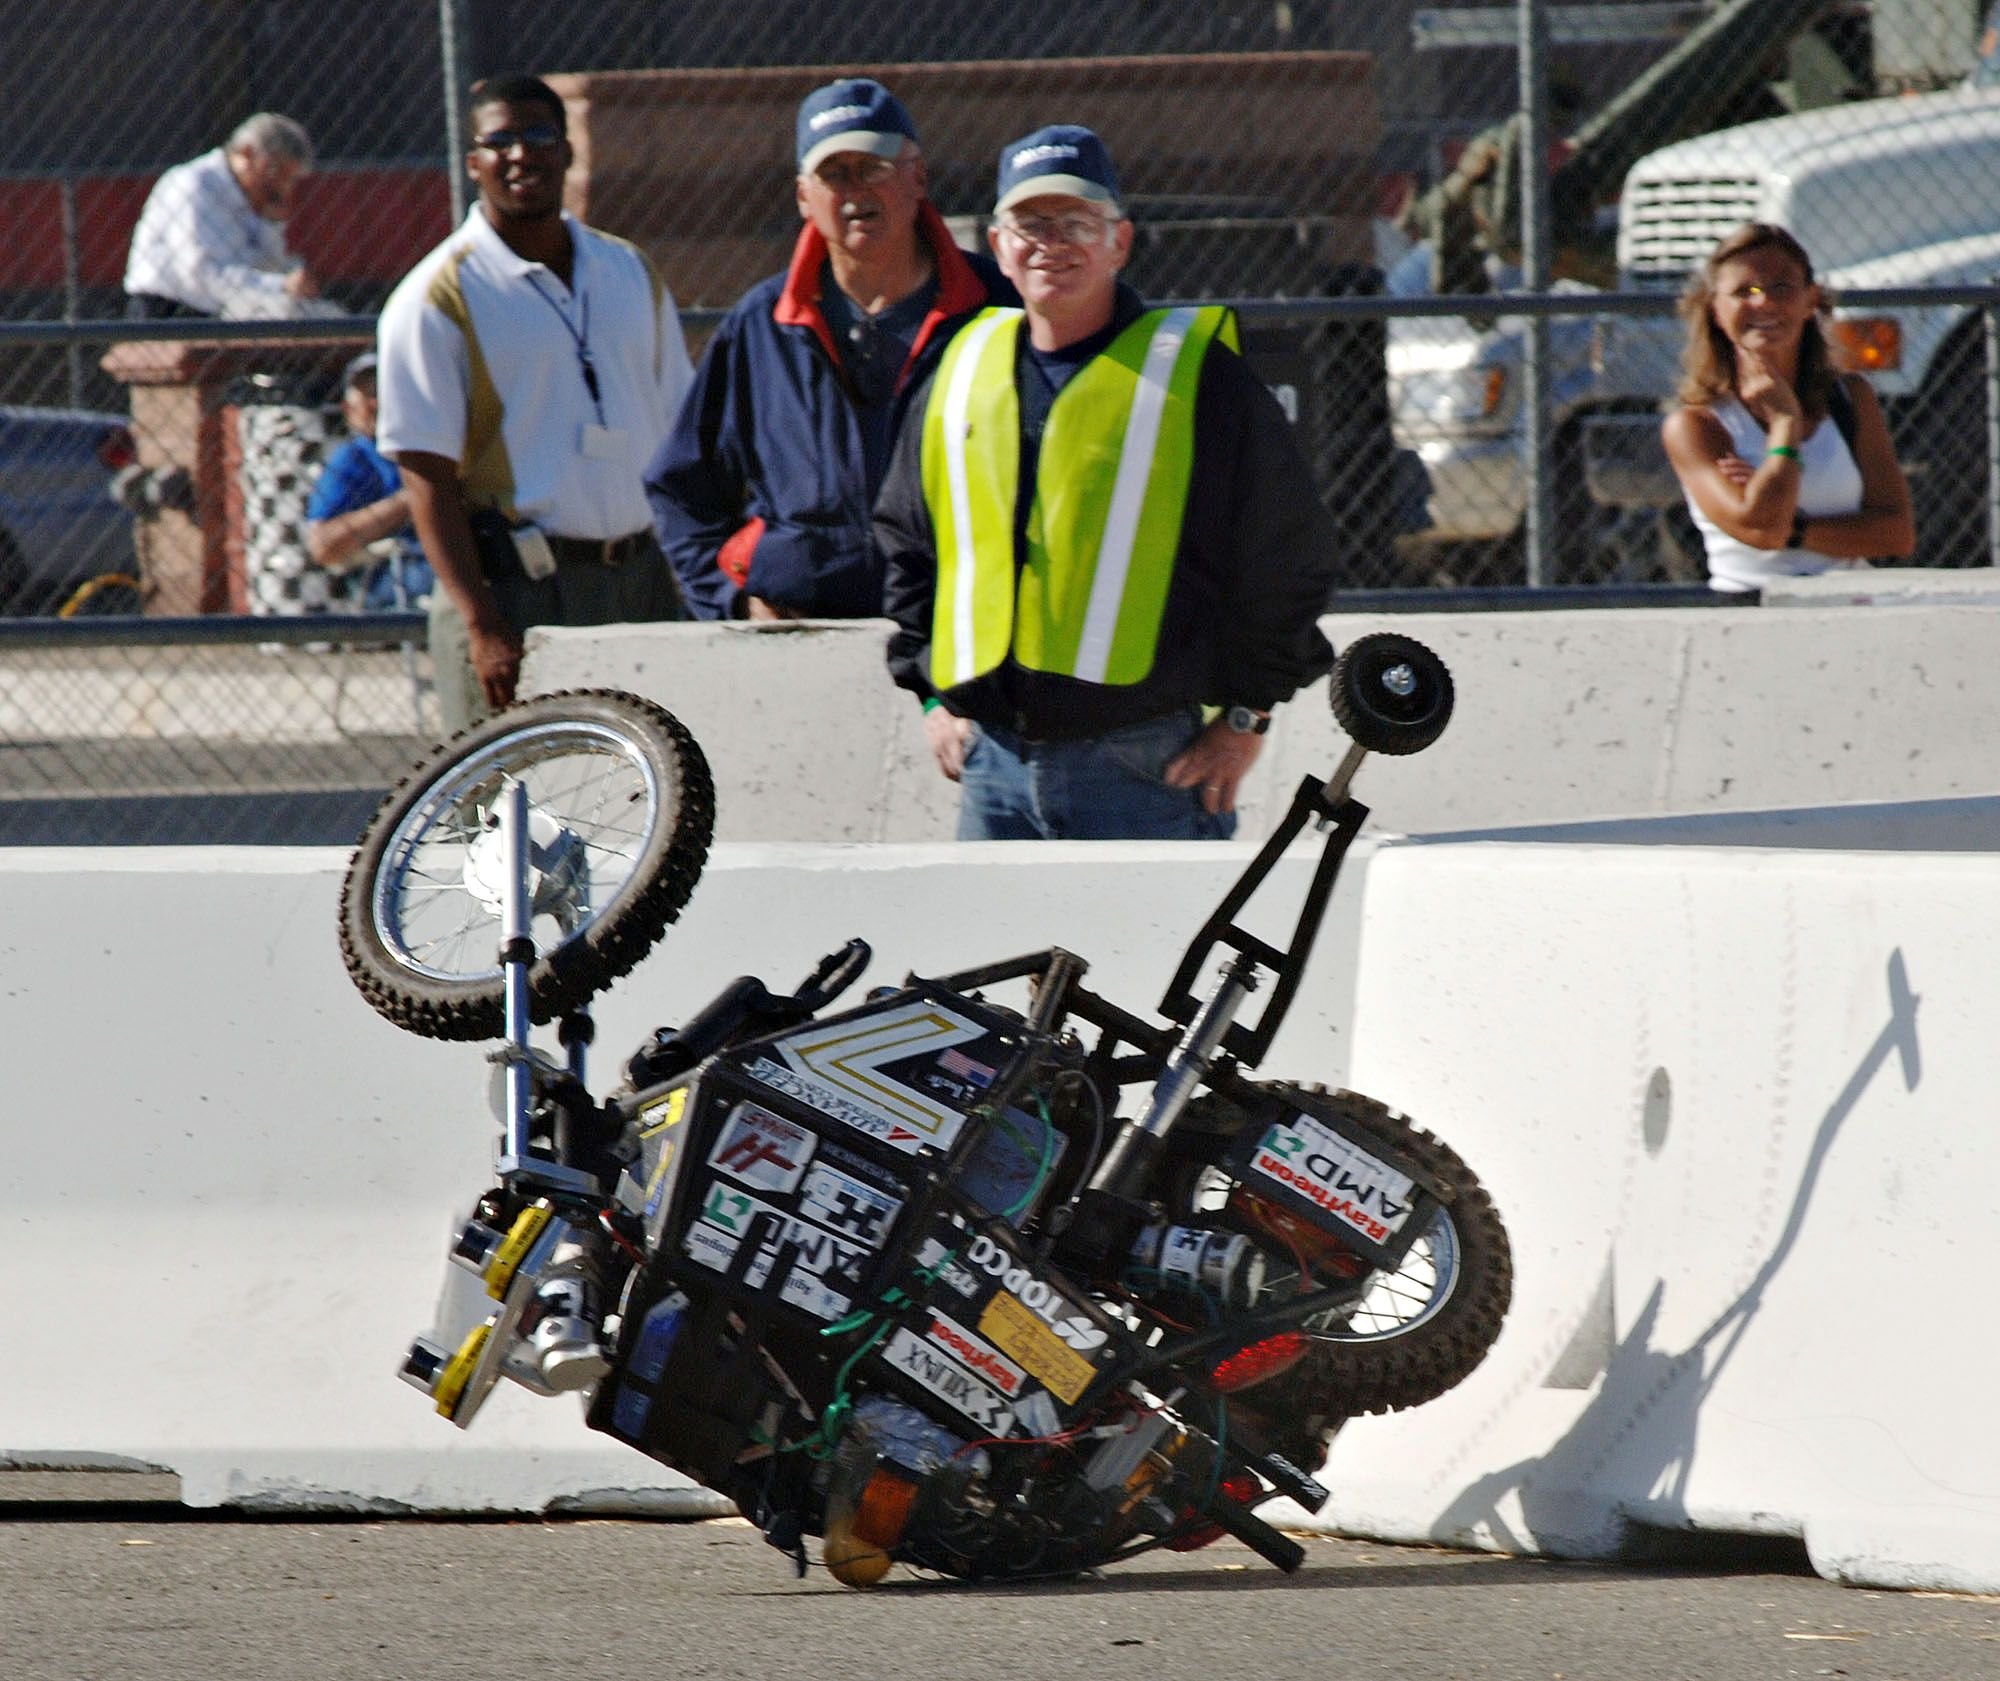 The Blue Team's Ghostrider, the world's first autonomous motorcycle, flips over after crashing into a wall during a test run for the National Qualification Event of the Defense Advanced Research Projects Agency DARPA) Grand Challenge, Tuesday, Oct. 4, 2005